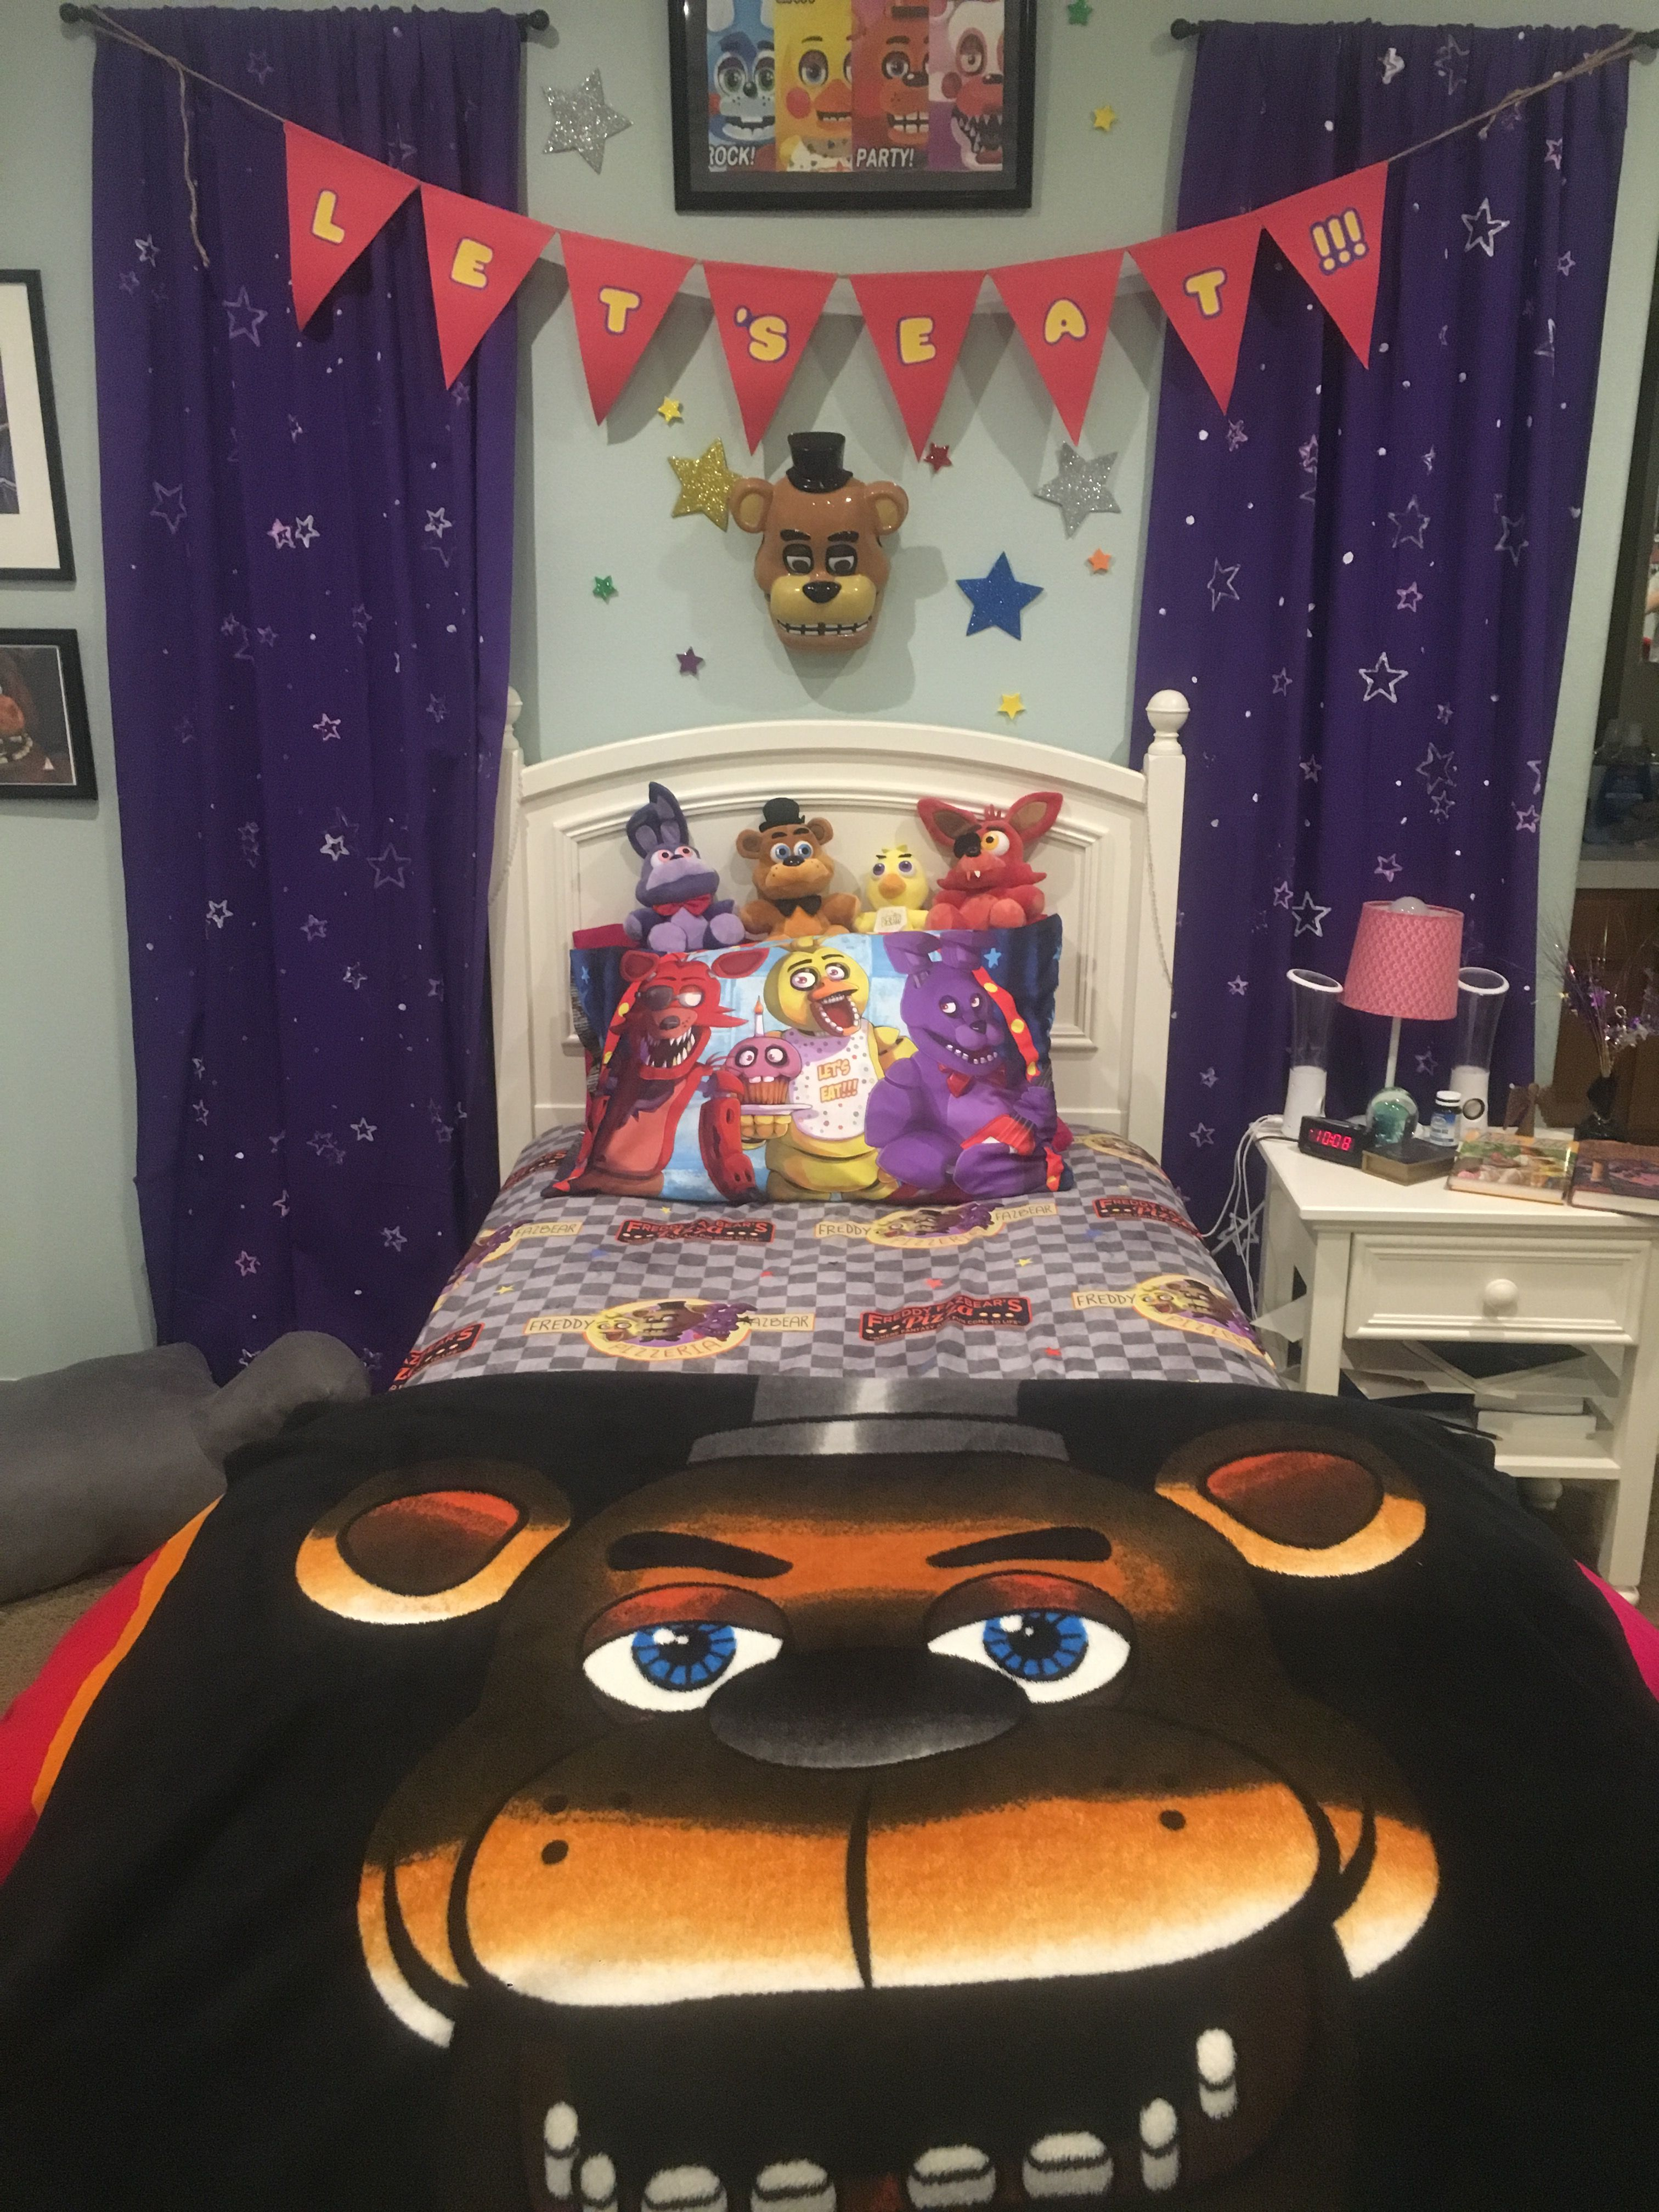 Five nights at freddys room IKEApink comforter Target